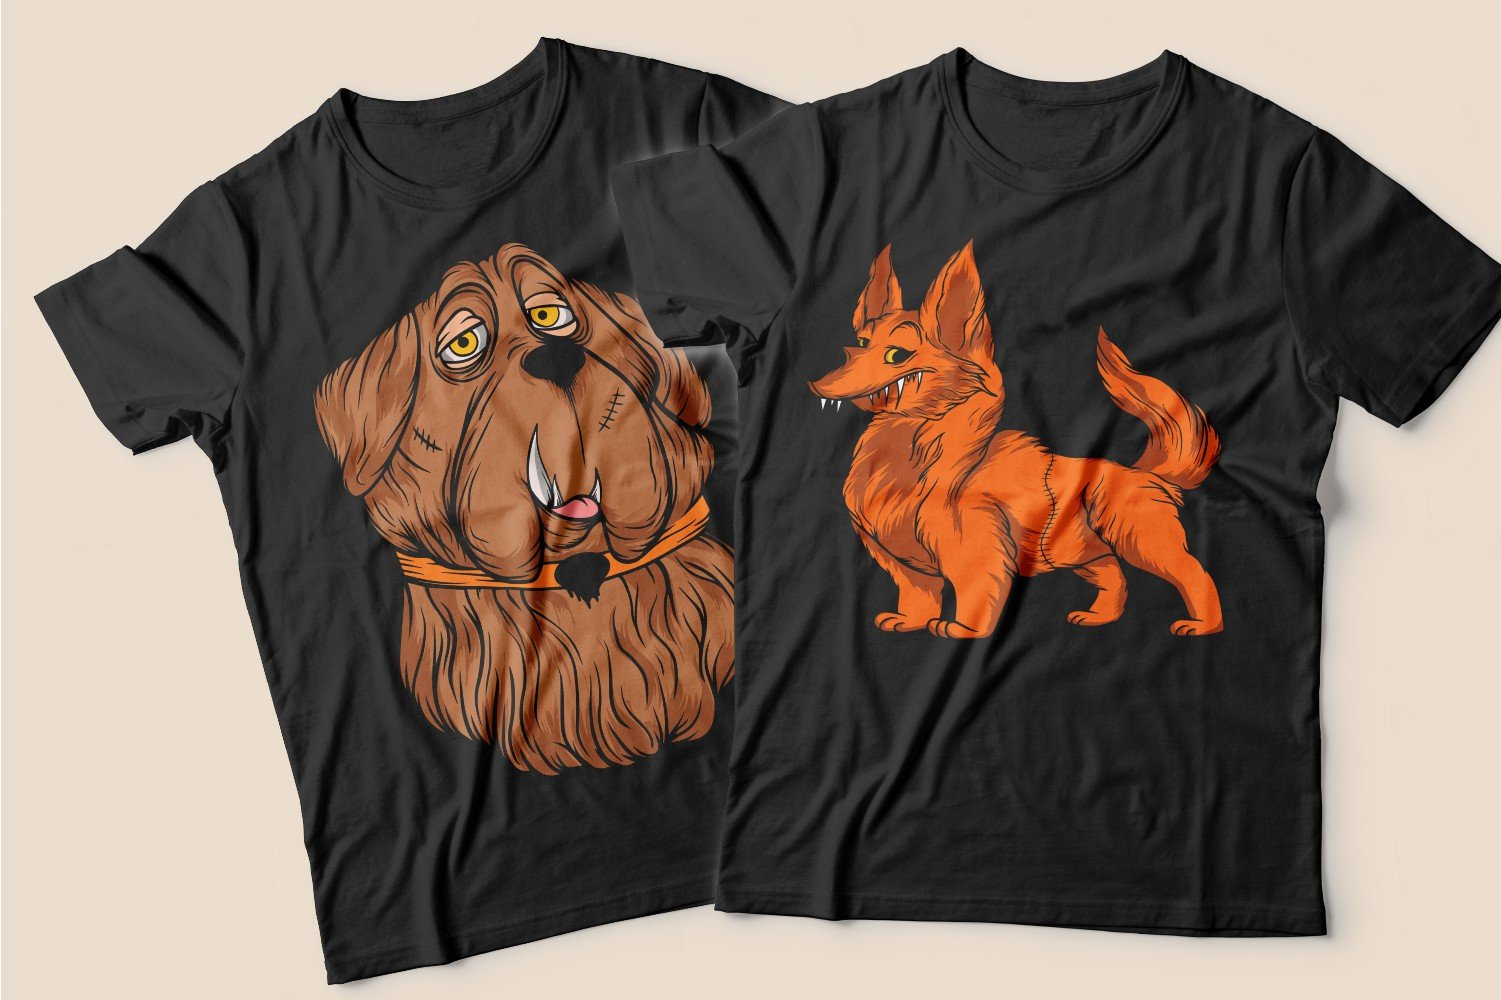 Two black T-shirts with reddish-brown dogs.